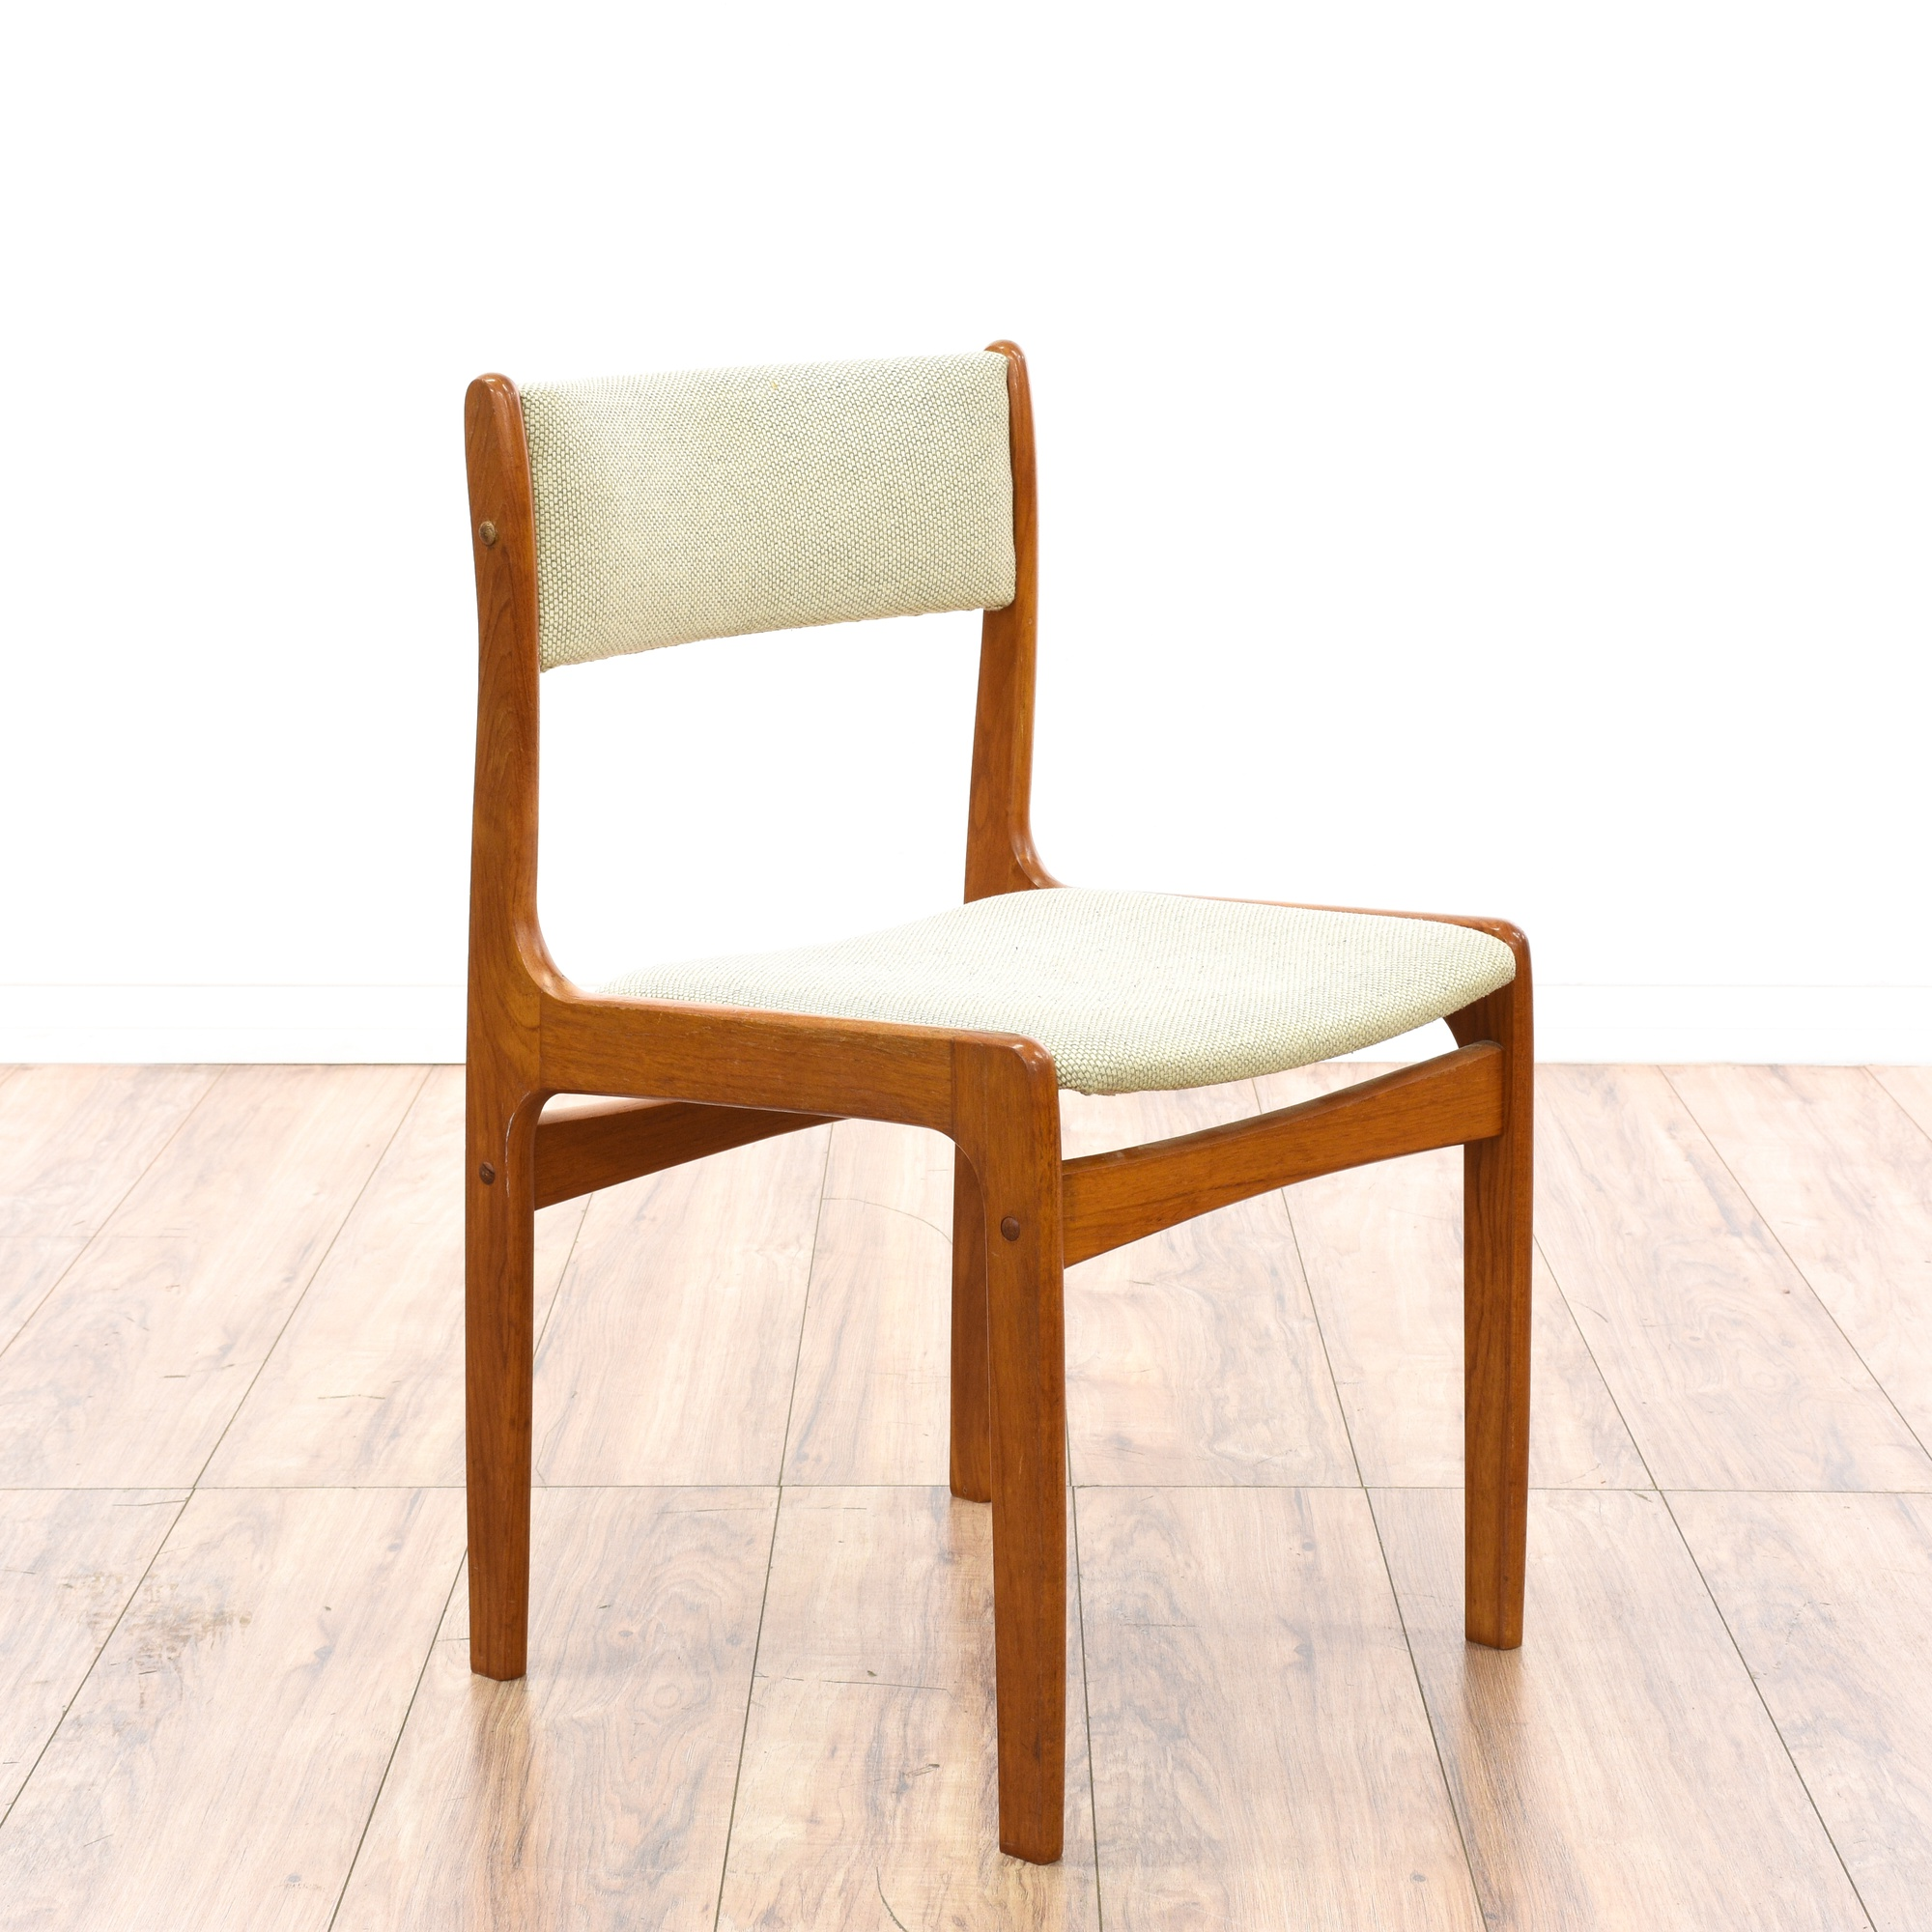 """Dining Room Chairs San Diego: Set Of 6 """"BRDR Furbo"""" Danish Modern Dining Chairs"""